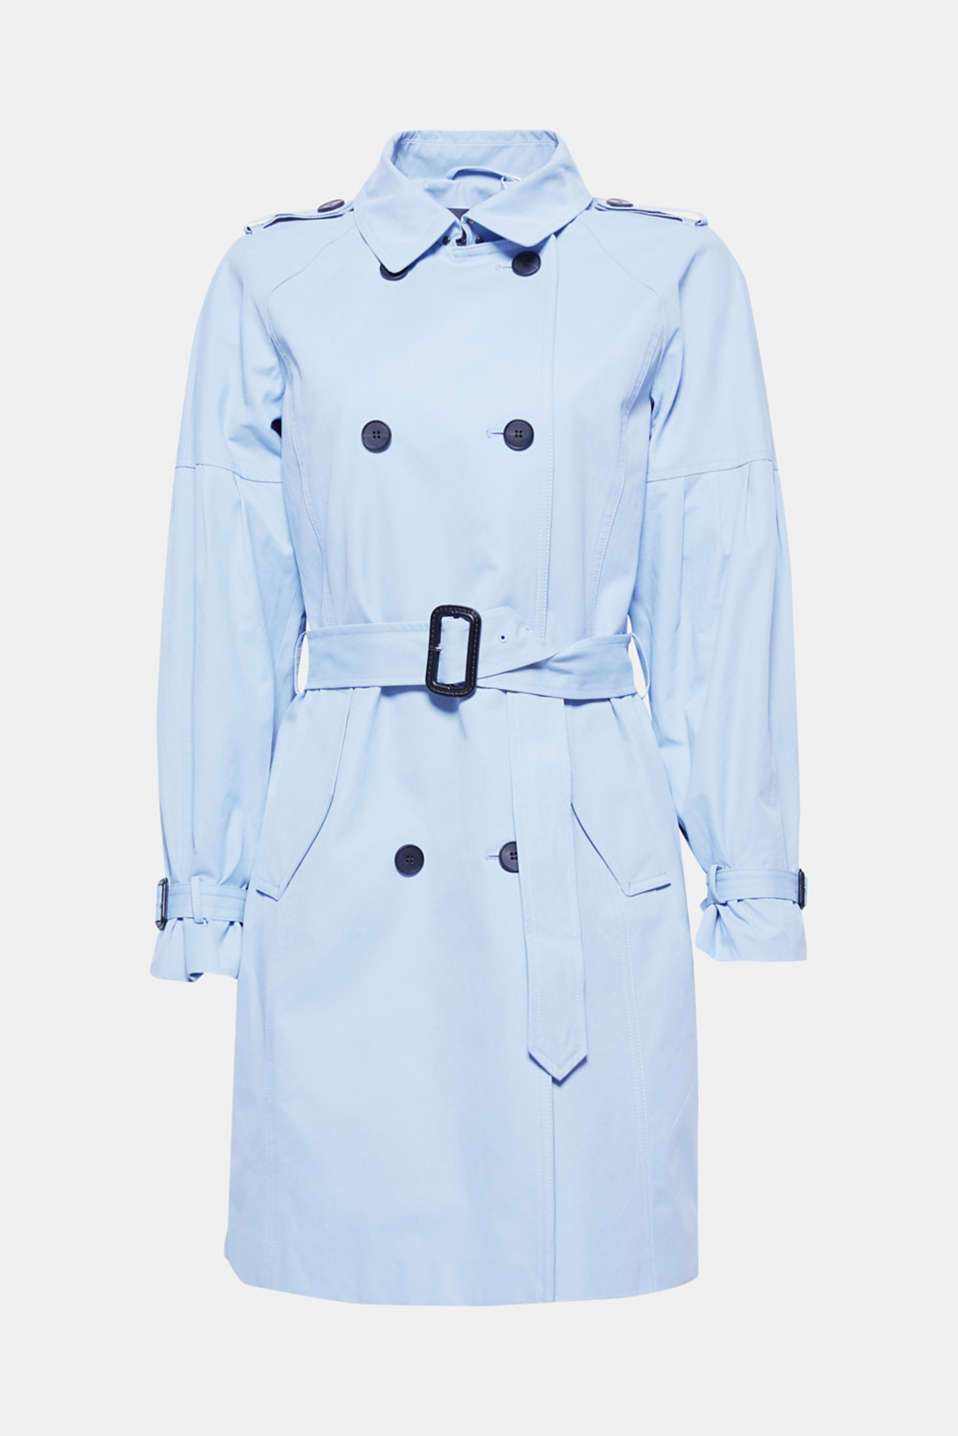 The soft outer surface and fashionable balloon sleeves give this knee-length trench coat its trendy kick!